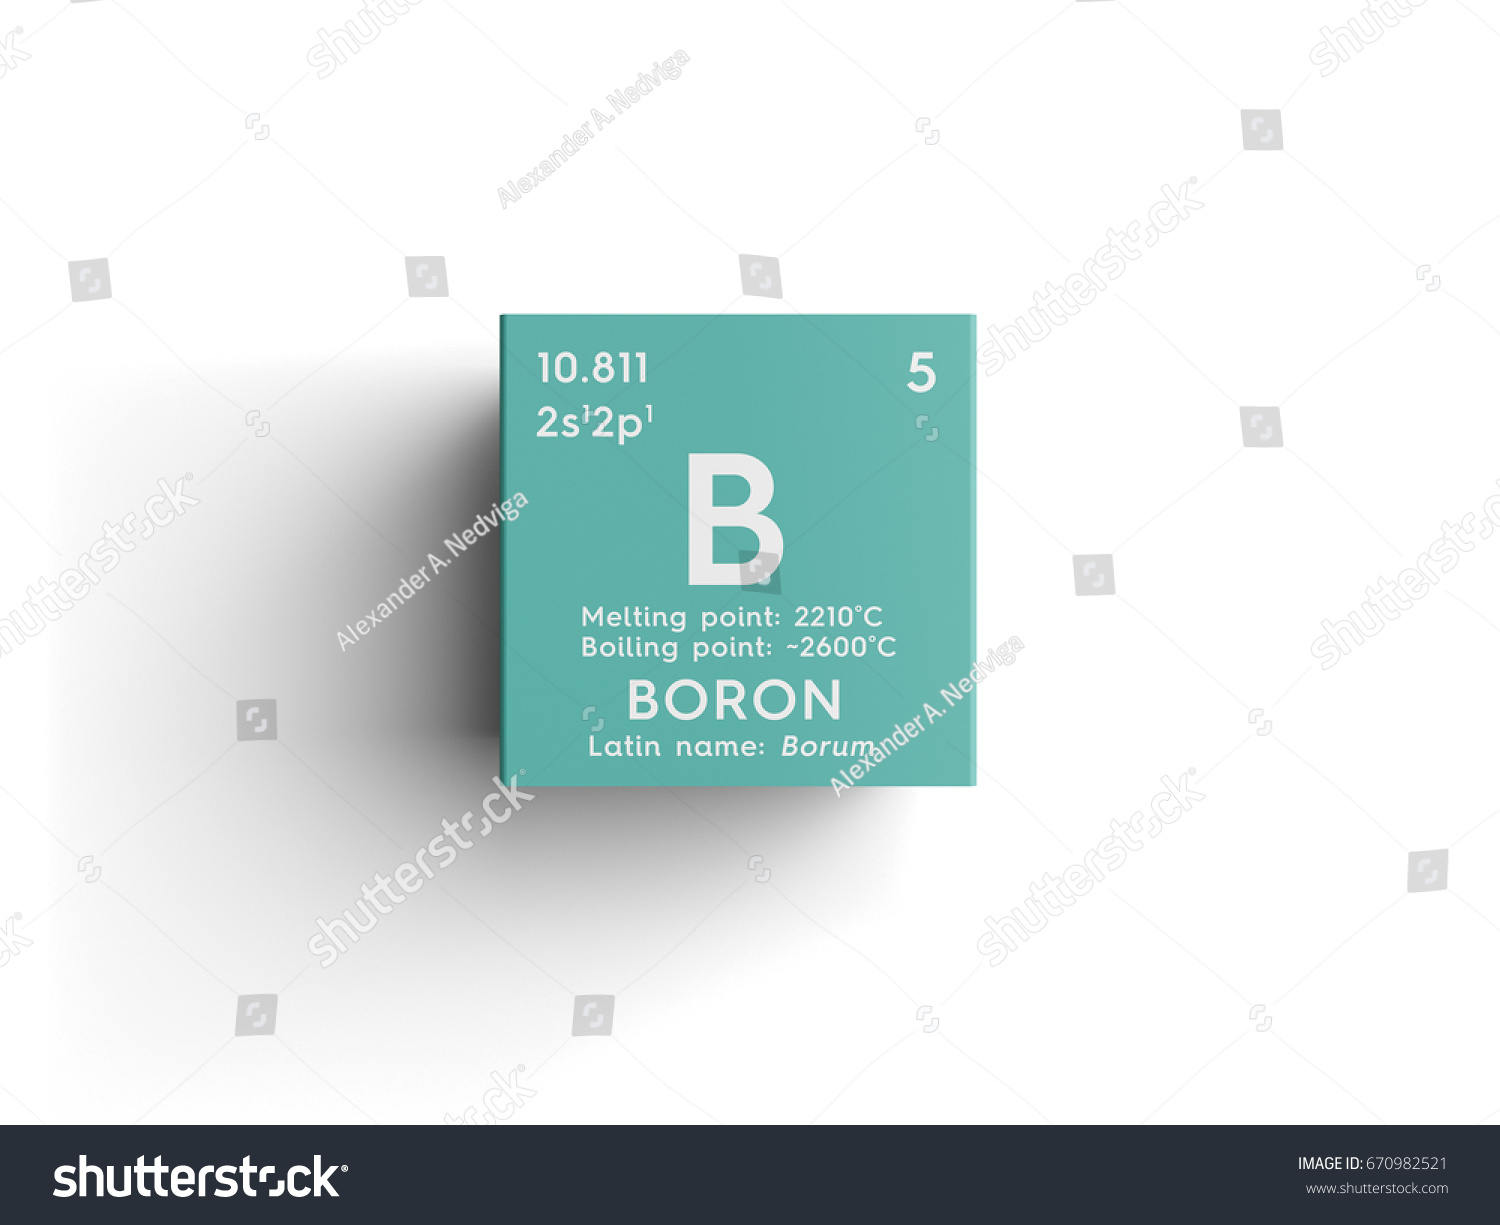 Boron chemical element mendeleevs periodic table stock boron chemical element of mendeleevs periodic table boron in square cube creative concept buycottarizona